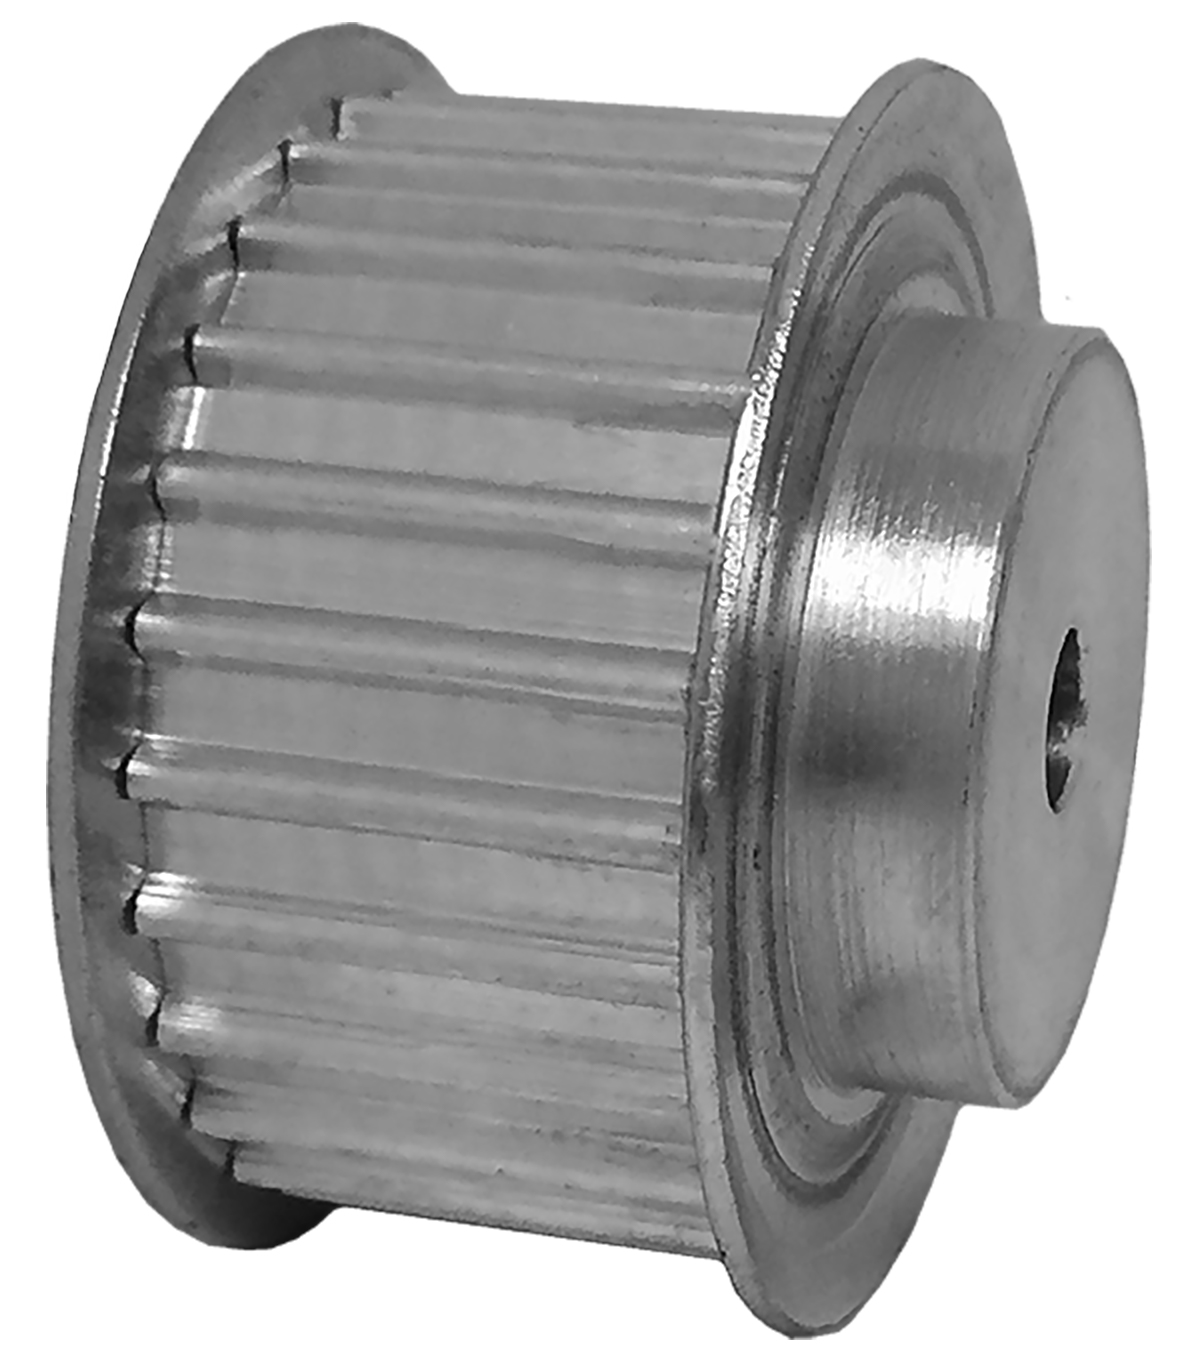 27AT5/25-2 - Aluminum Metric Pulleys